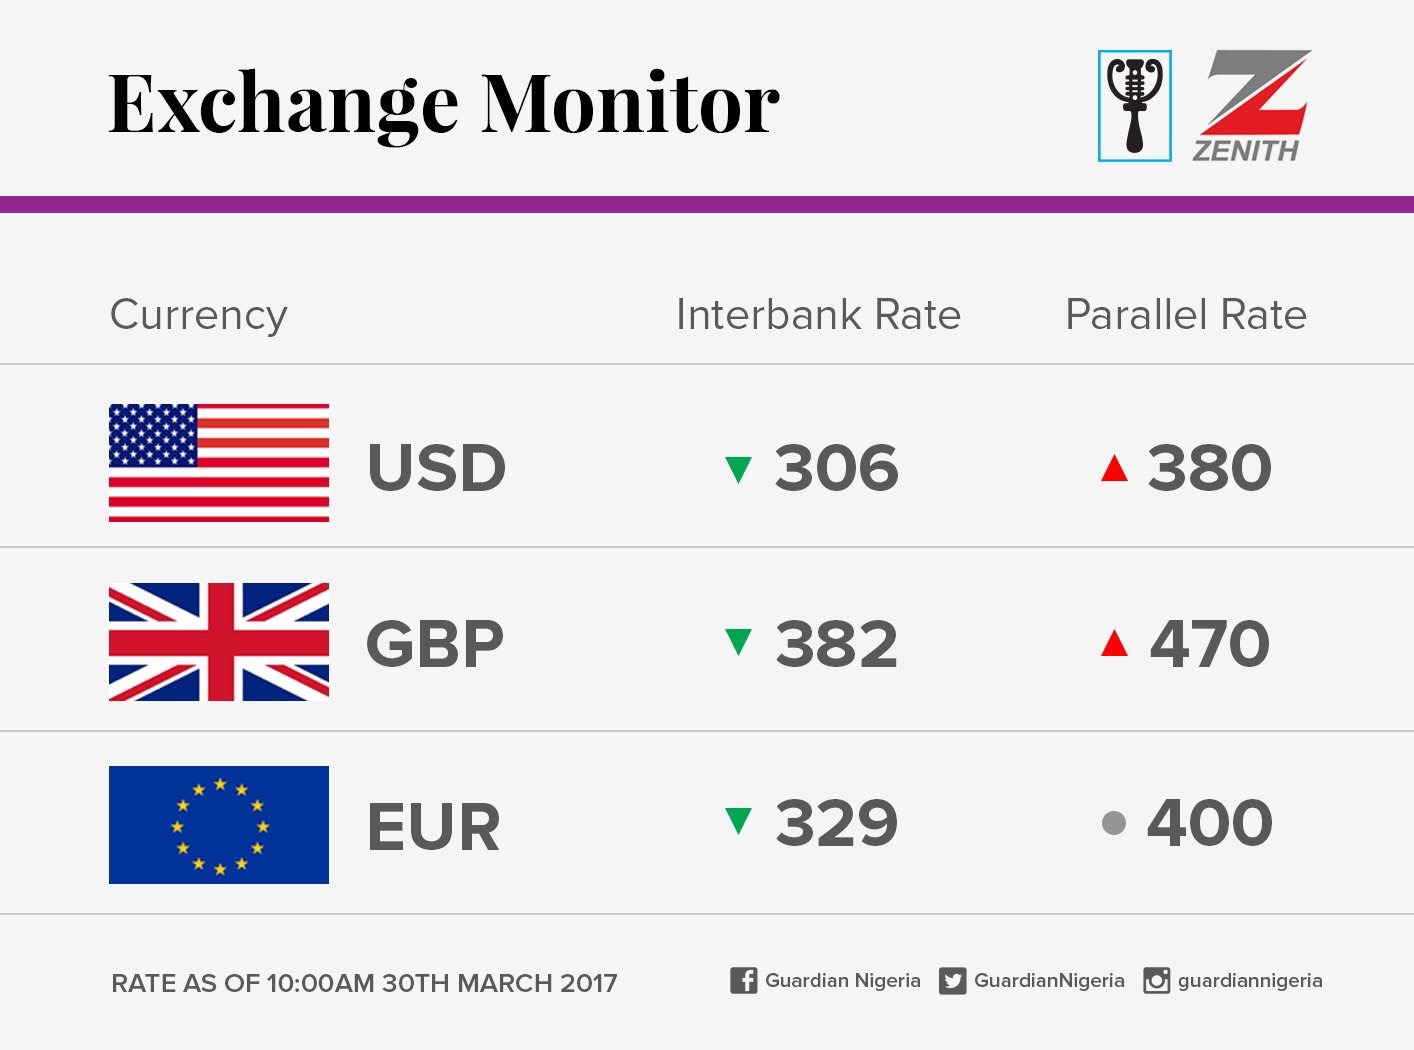 Exchange Rate For 30th March 2017